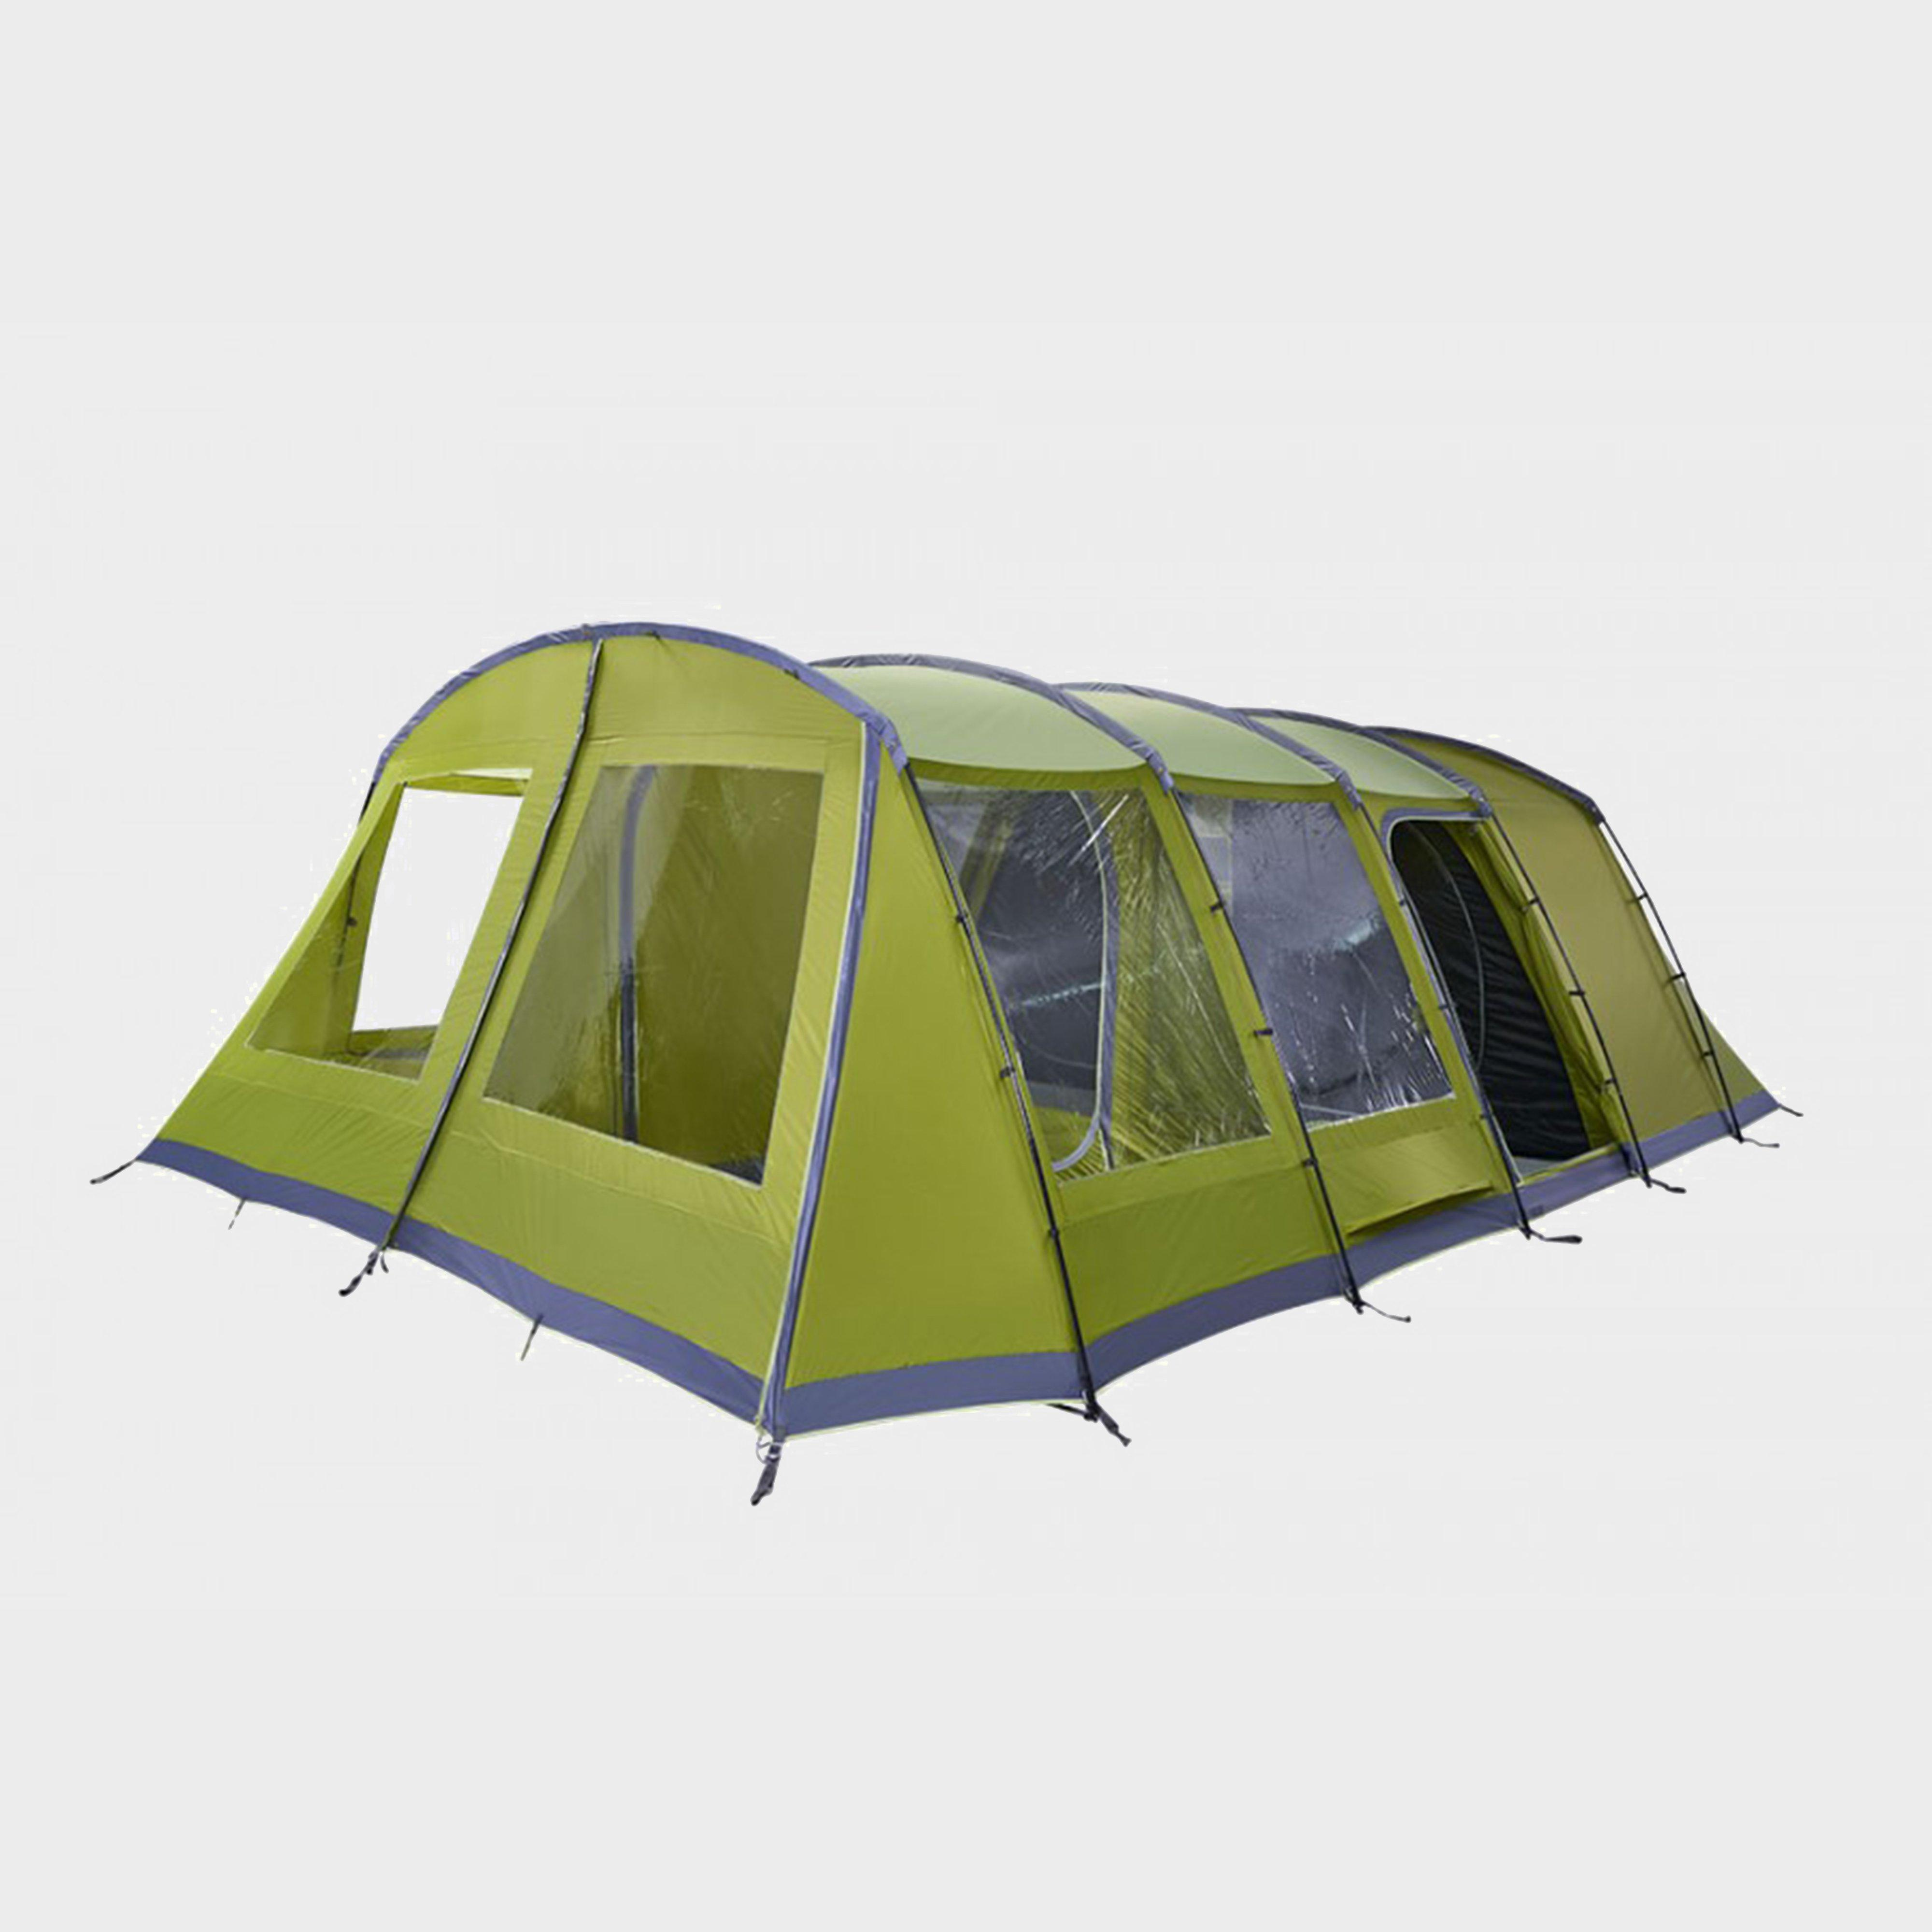 Vango Vango Casa Lux 7 Person Family Tent, Green